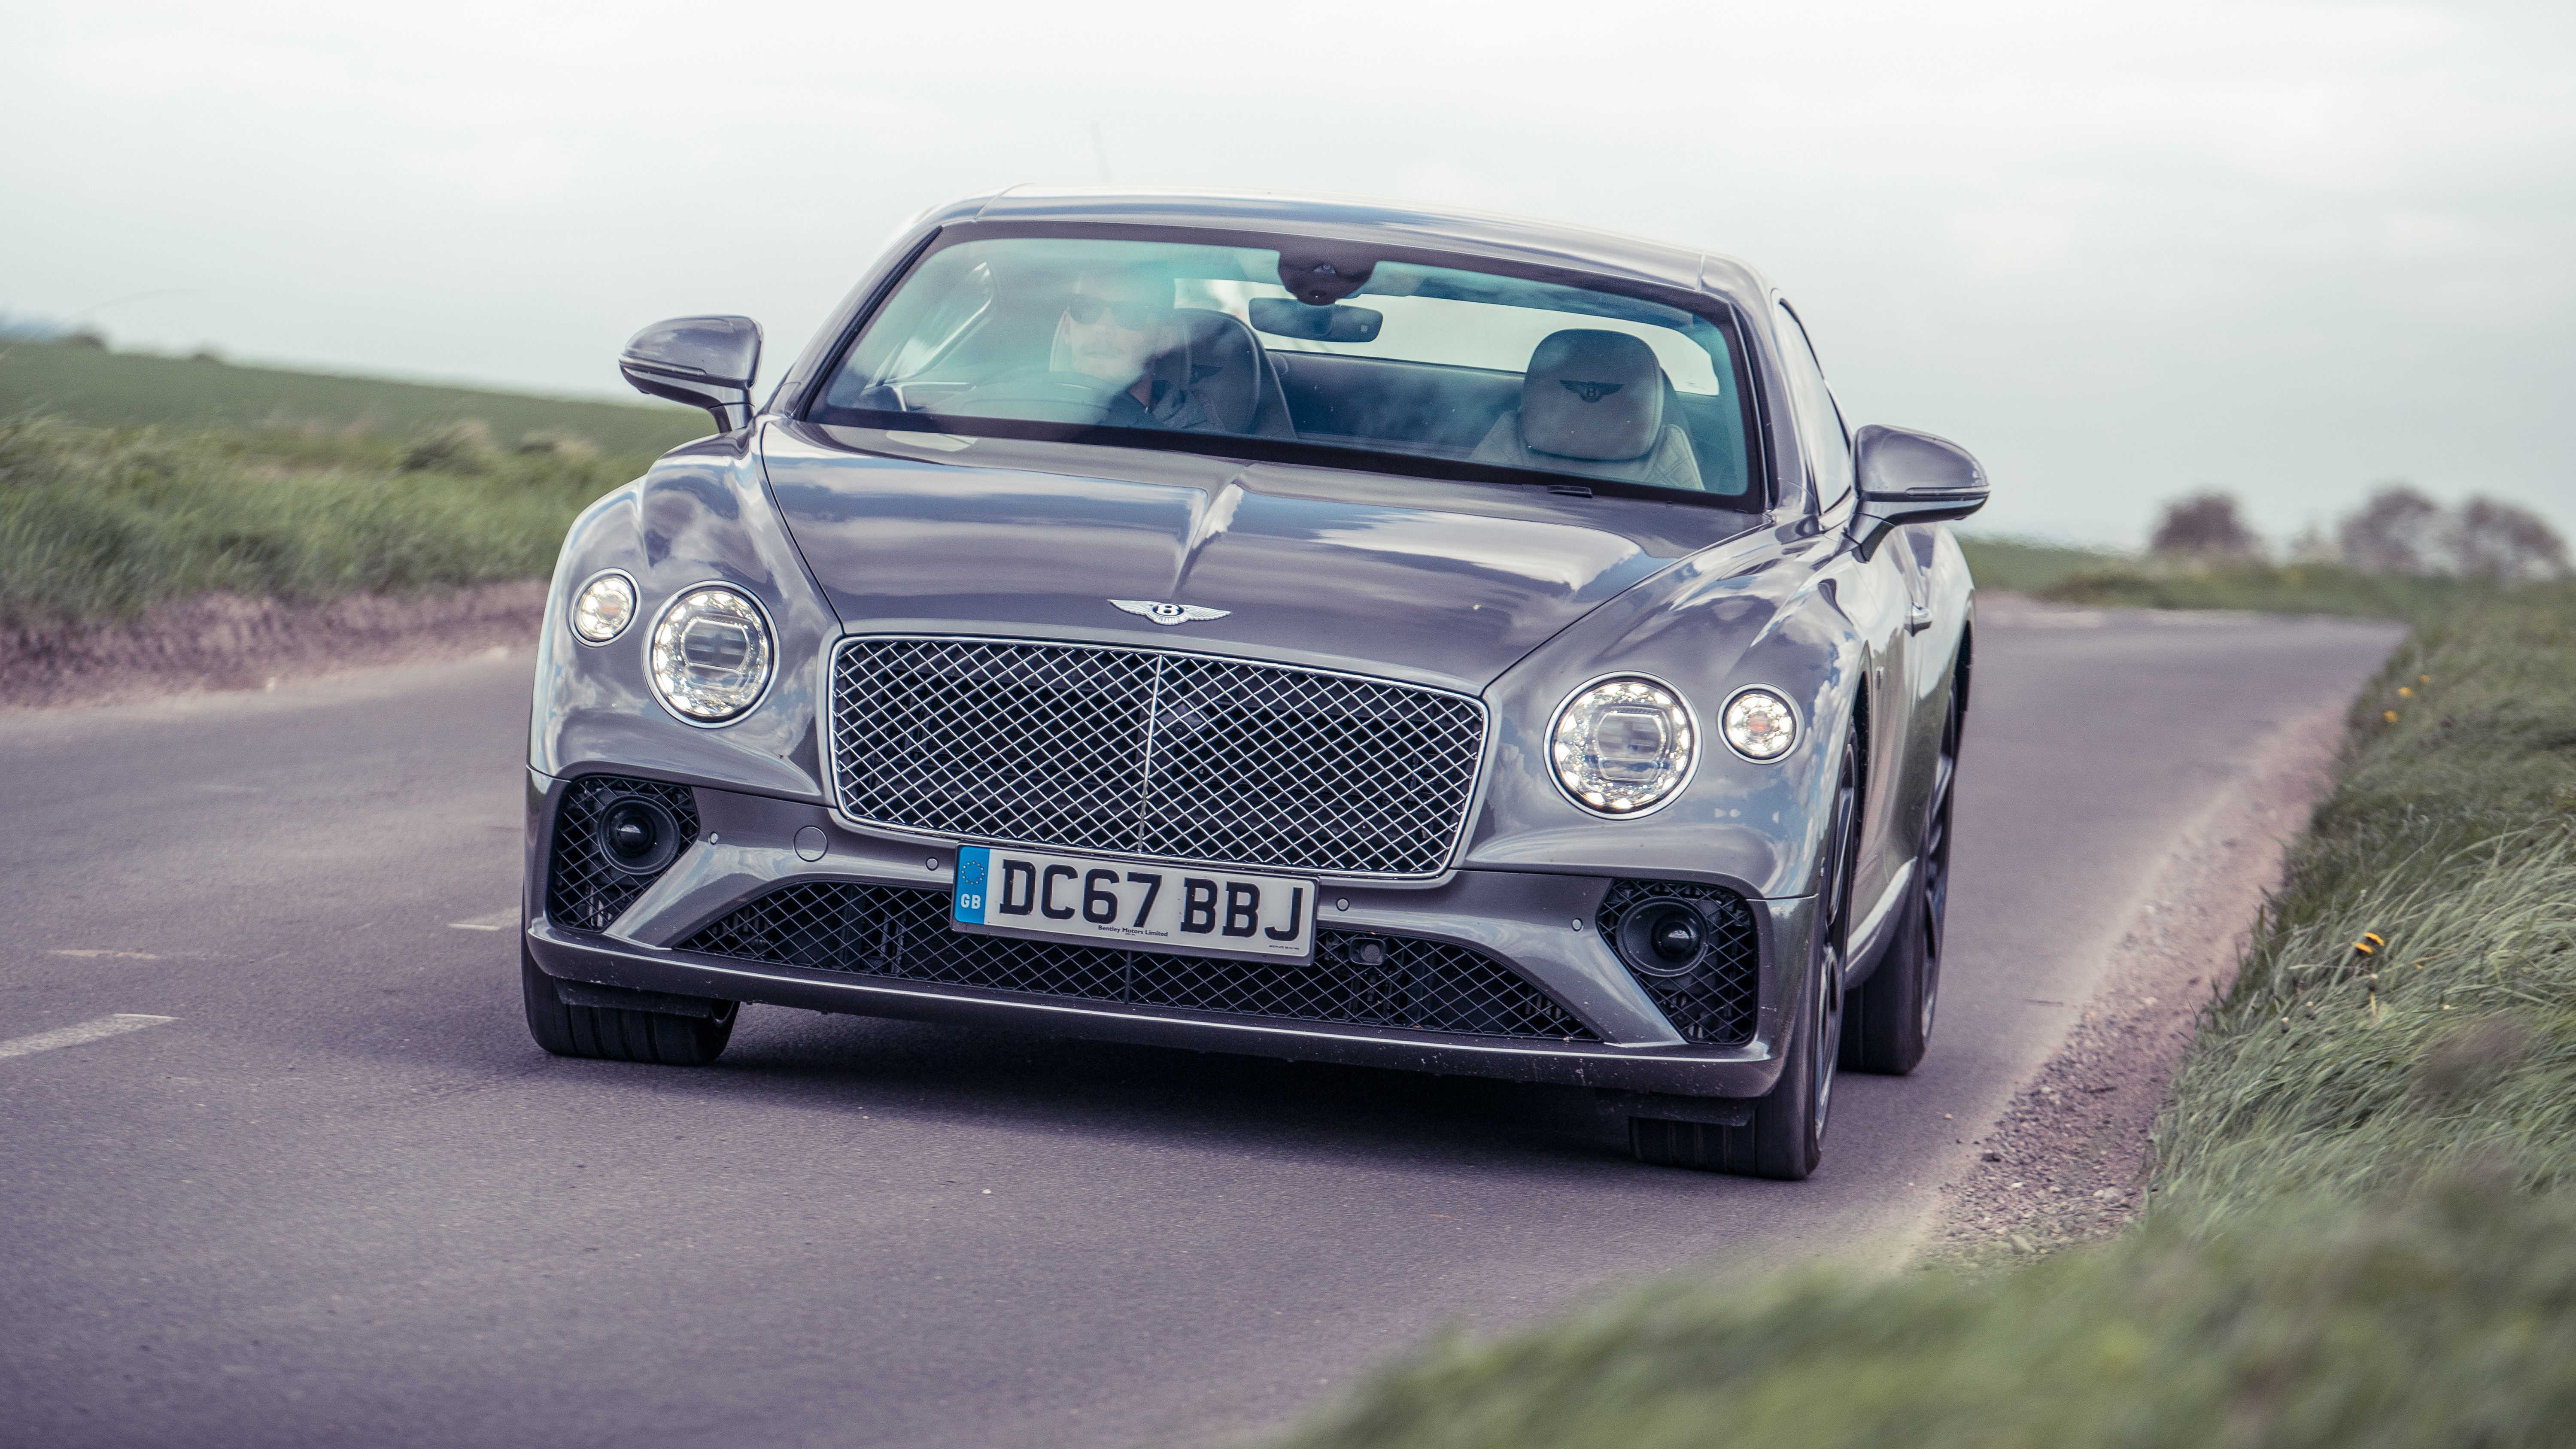 lincoln flying much photos and cars vehicle spur a review is how car bentley drivins